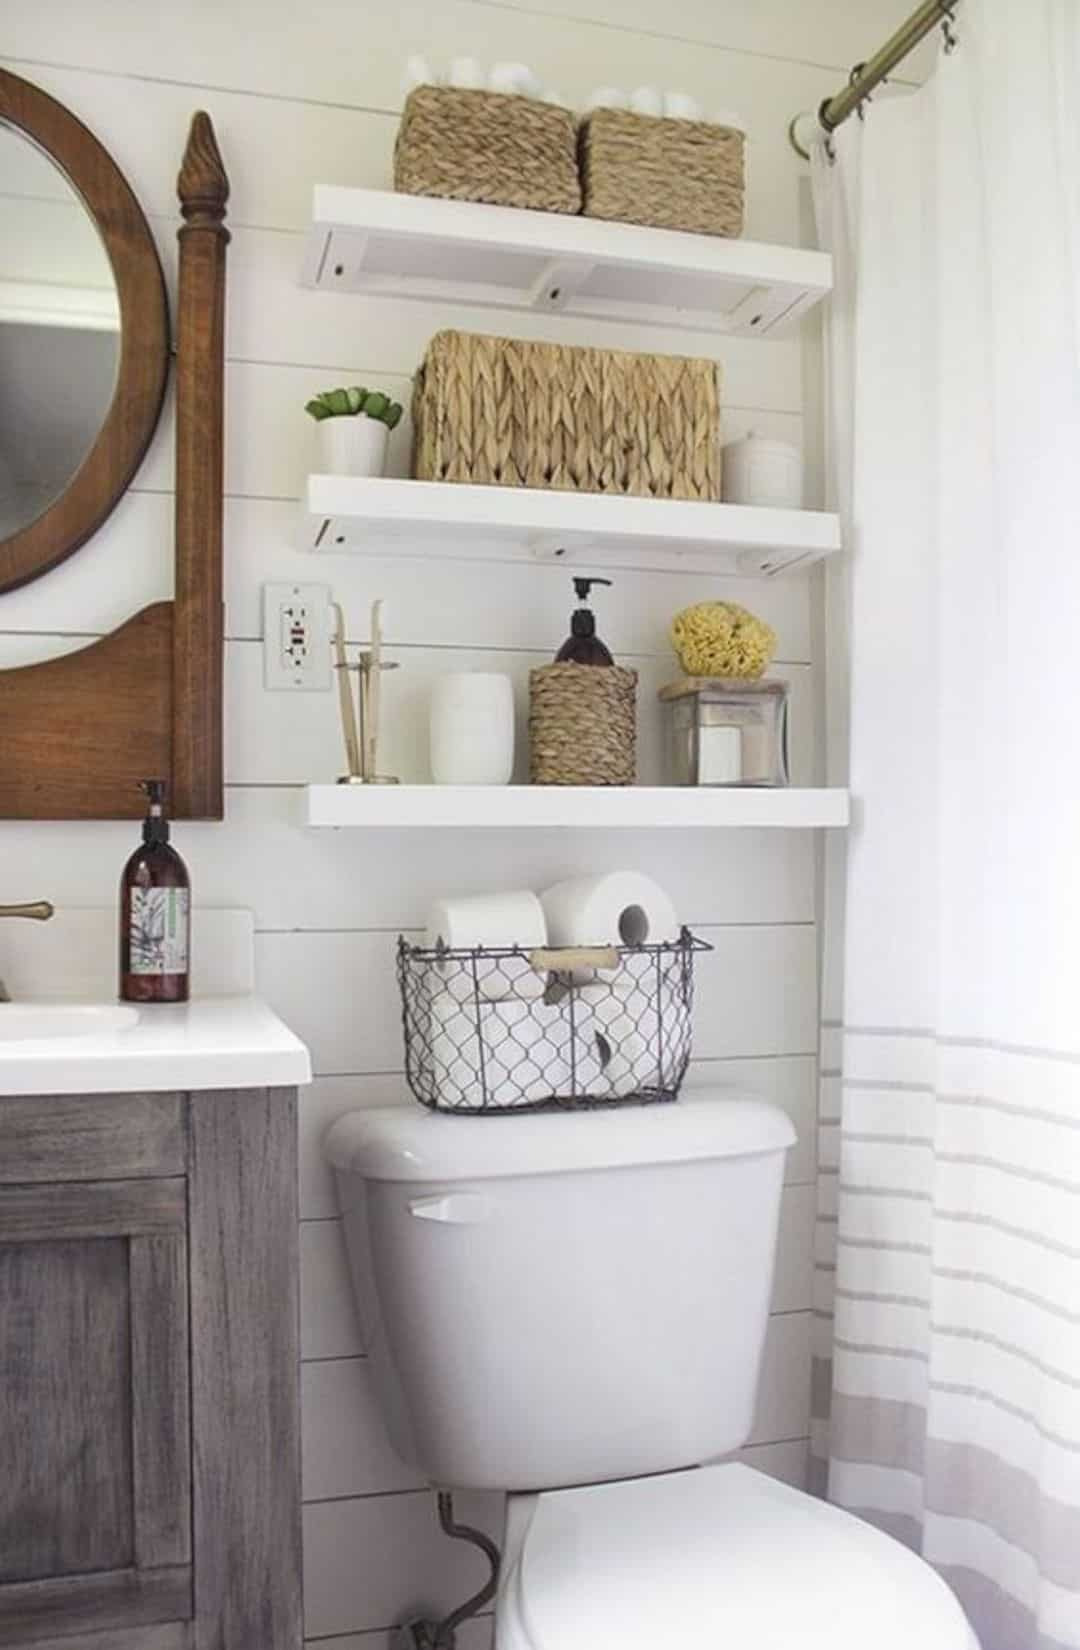 Accessories for Bathroom Decoration Lovely 17 Awesome Small Bathroom Decorating Ideas